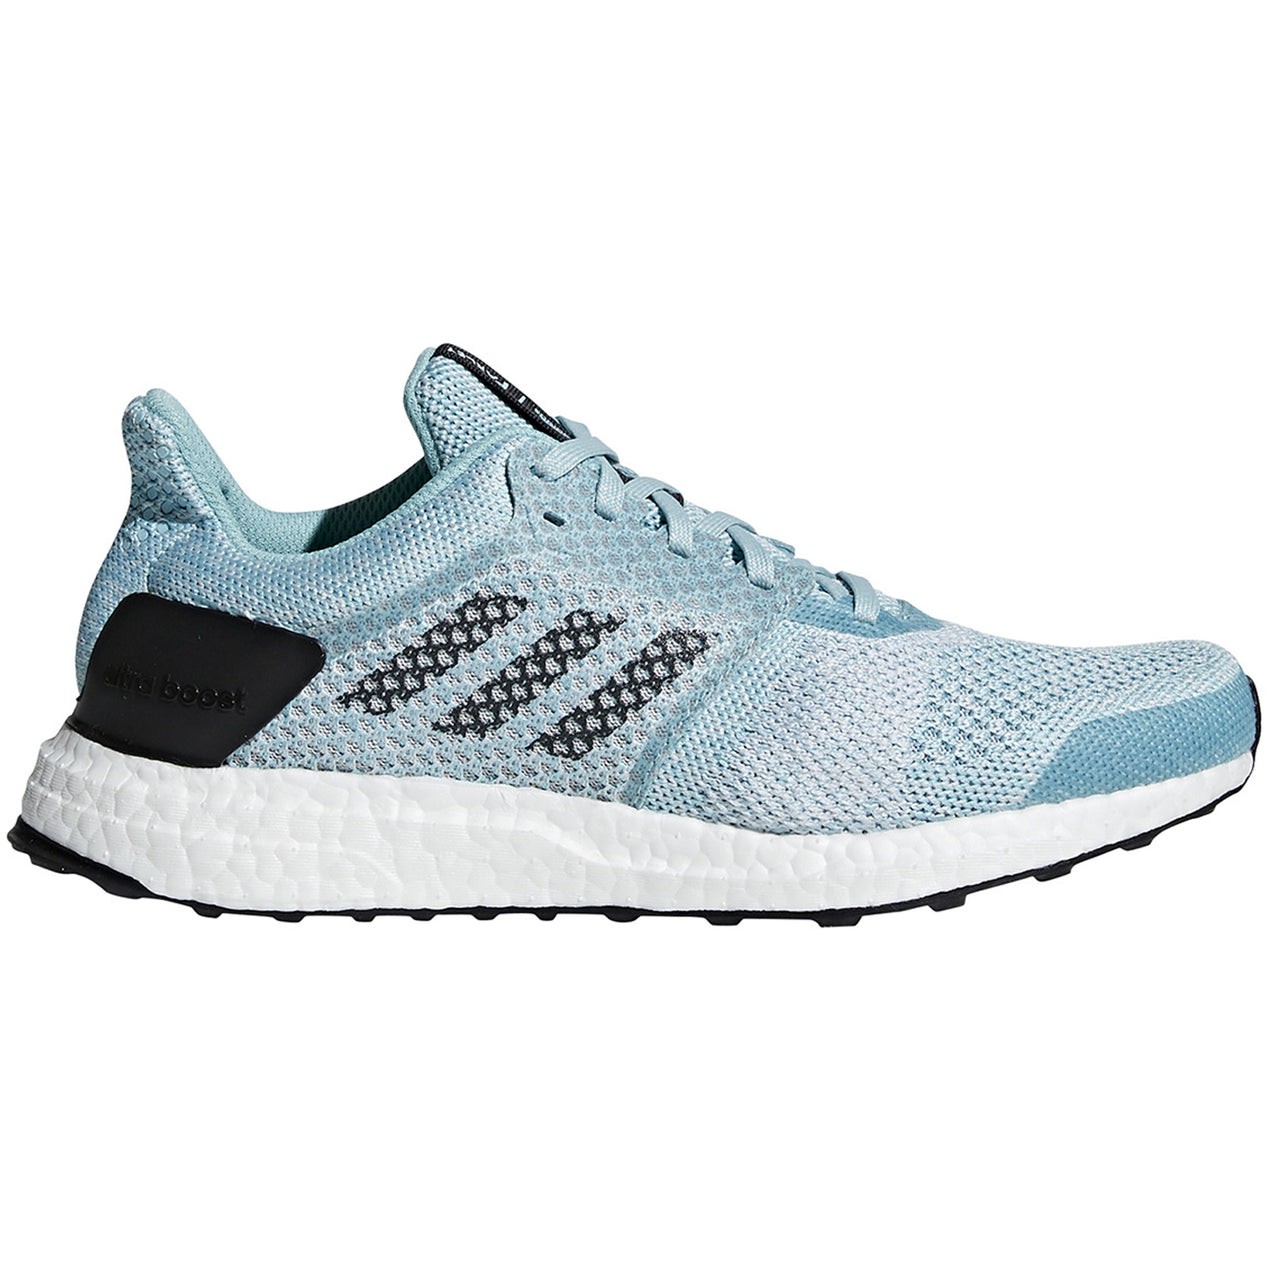 14f710c7653eca Adidas Ultraboost St Parley Running Shoes - Women s